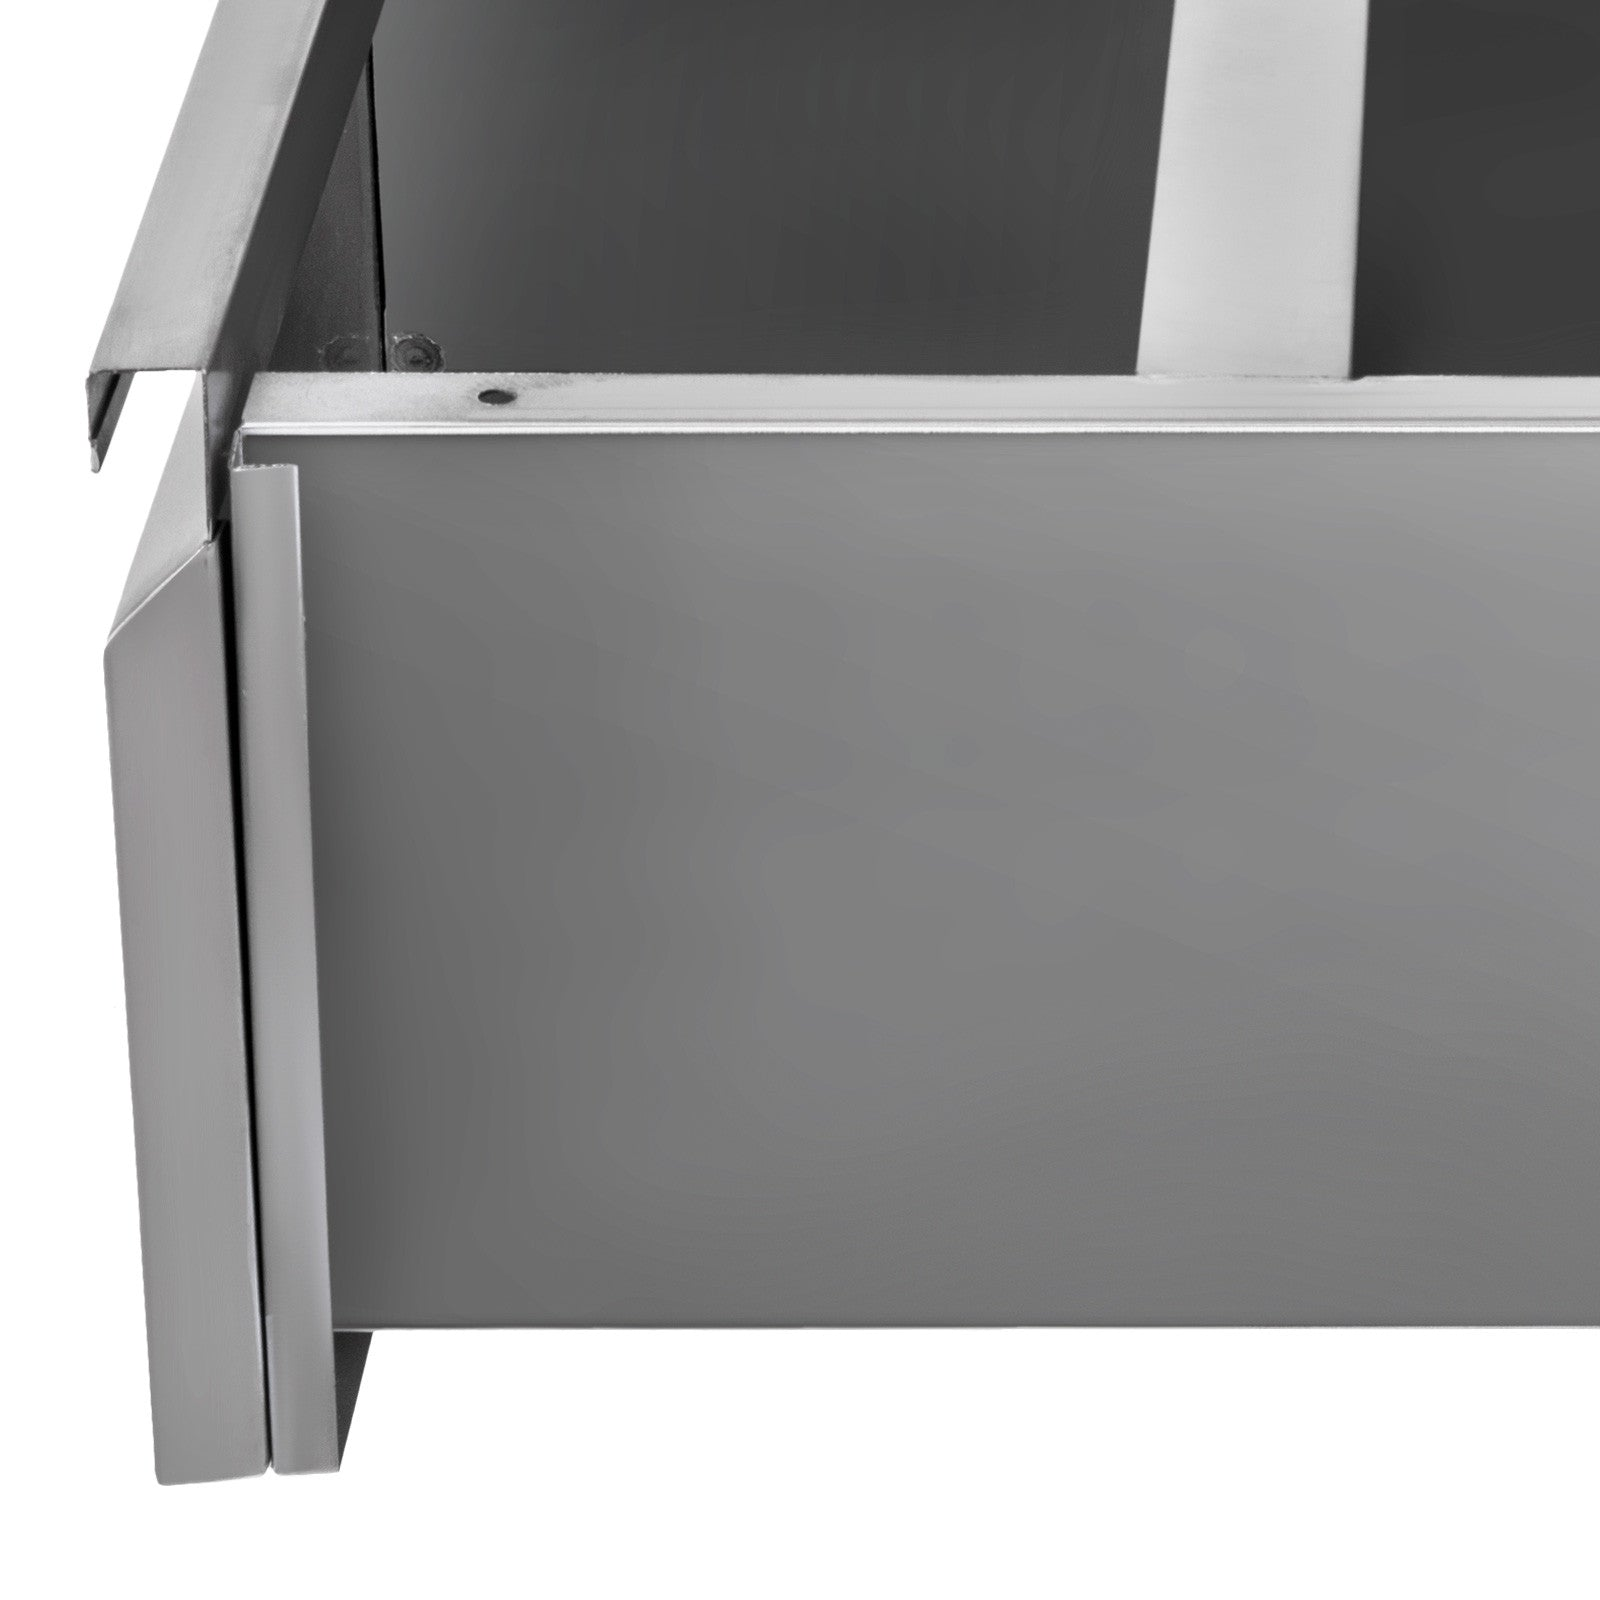 "Work Table Drawer 20""x 20""x 8"" Front Drawer Outdoor Kitchen Ball Bearing Slides"